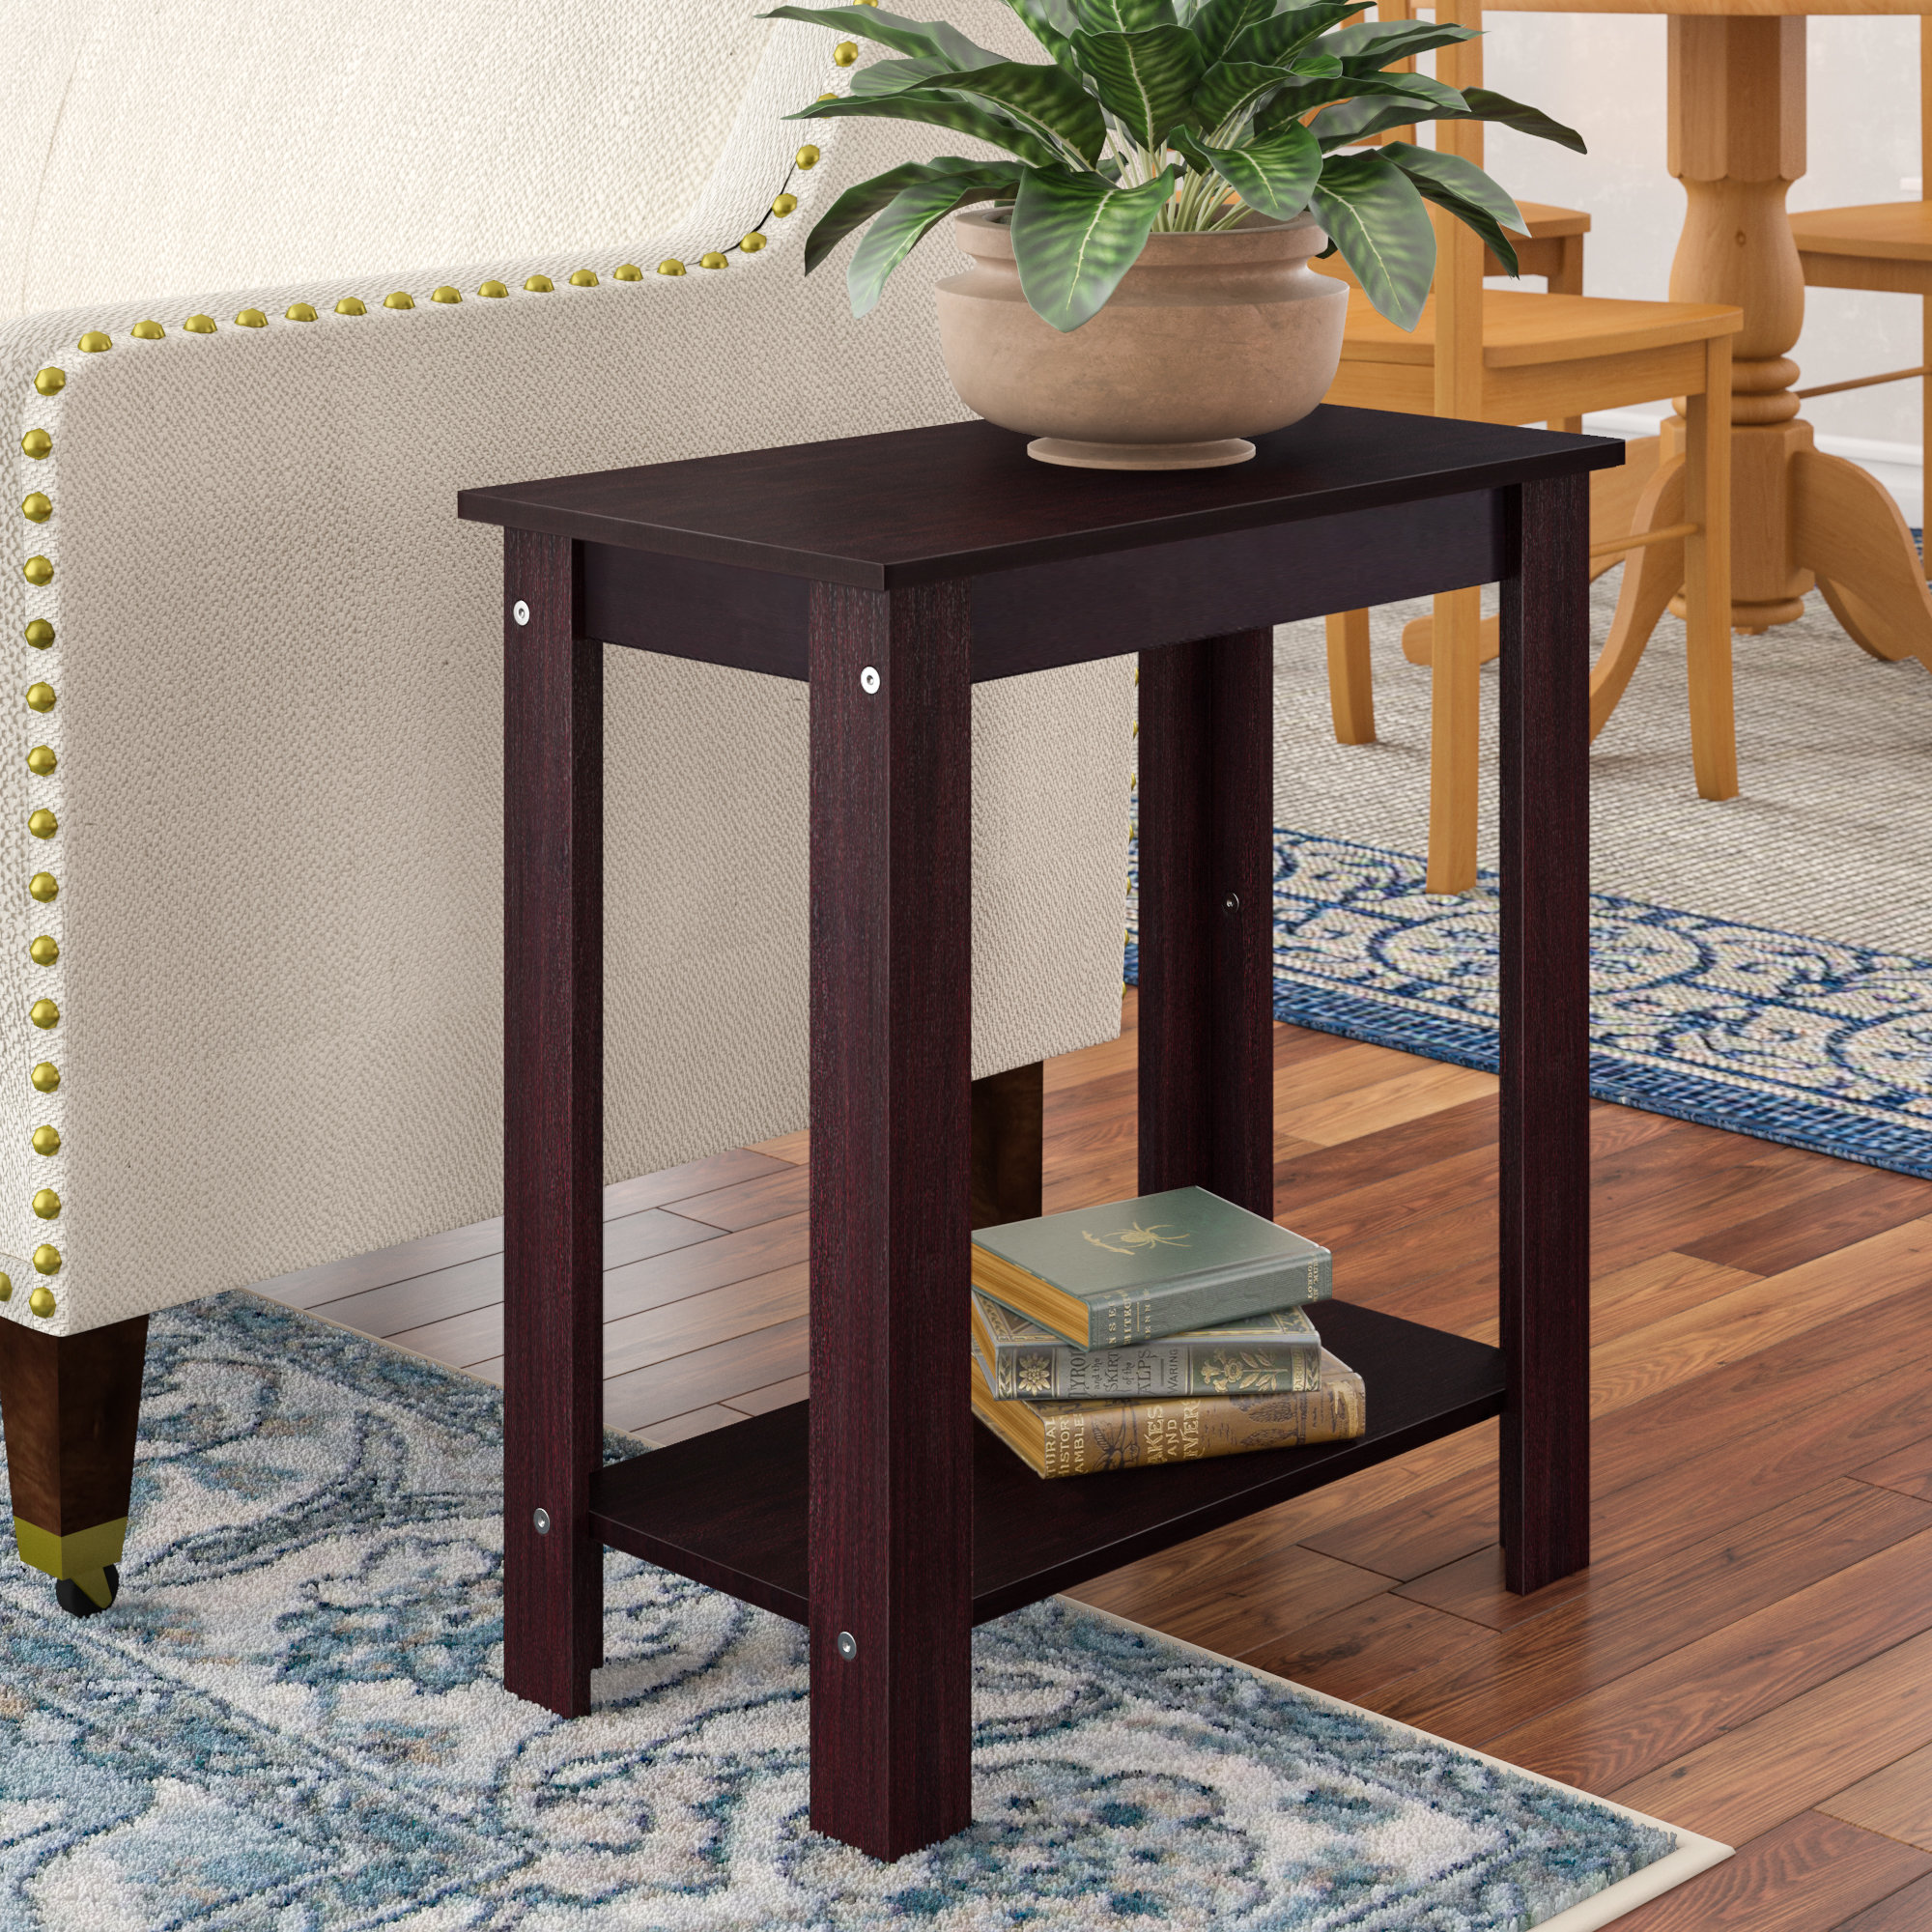 small end tables you love phillippi wooden table patchen accent console with cabinets garden stool side coffee patio umbrella hole ashley furniture mattress dark blue collections